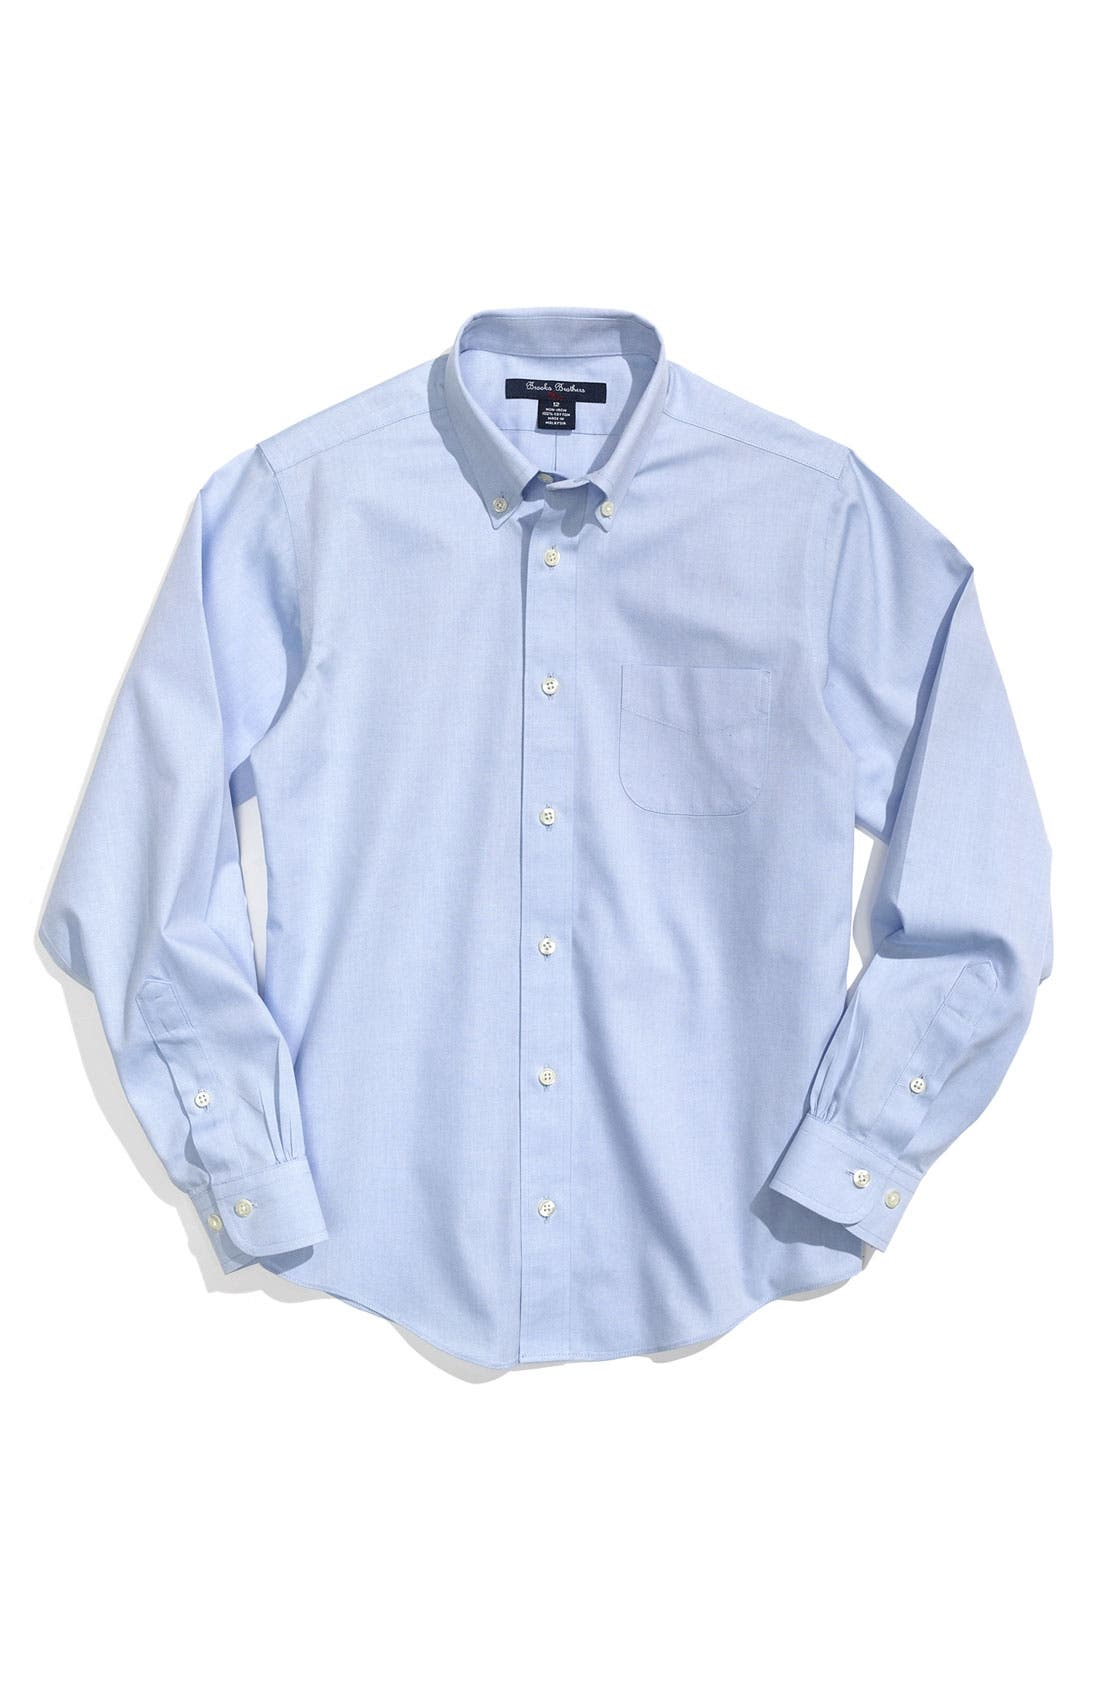 Main Image - Brooks Brothers Dress Shirt (Big Boys)